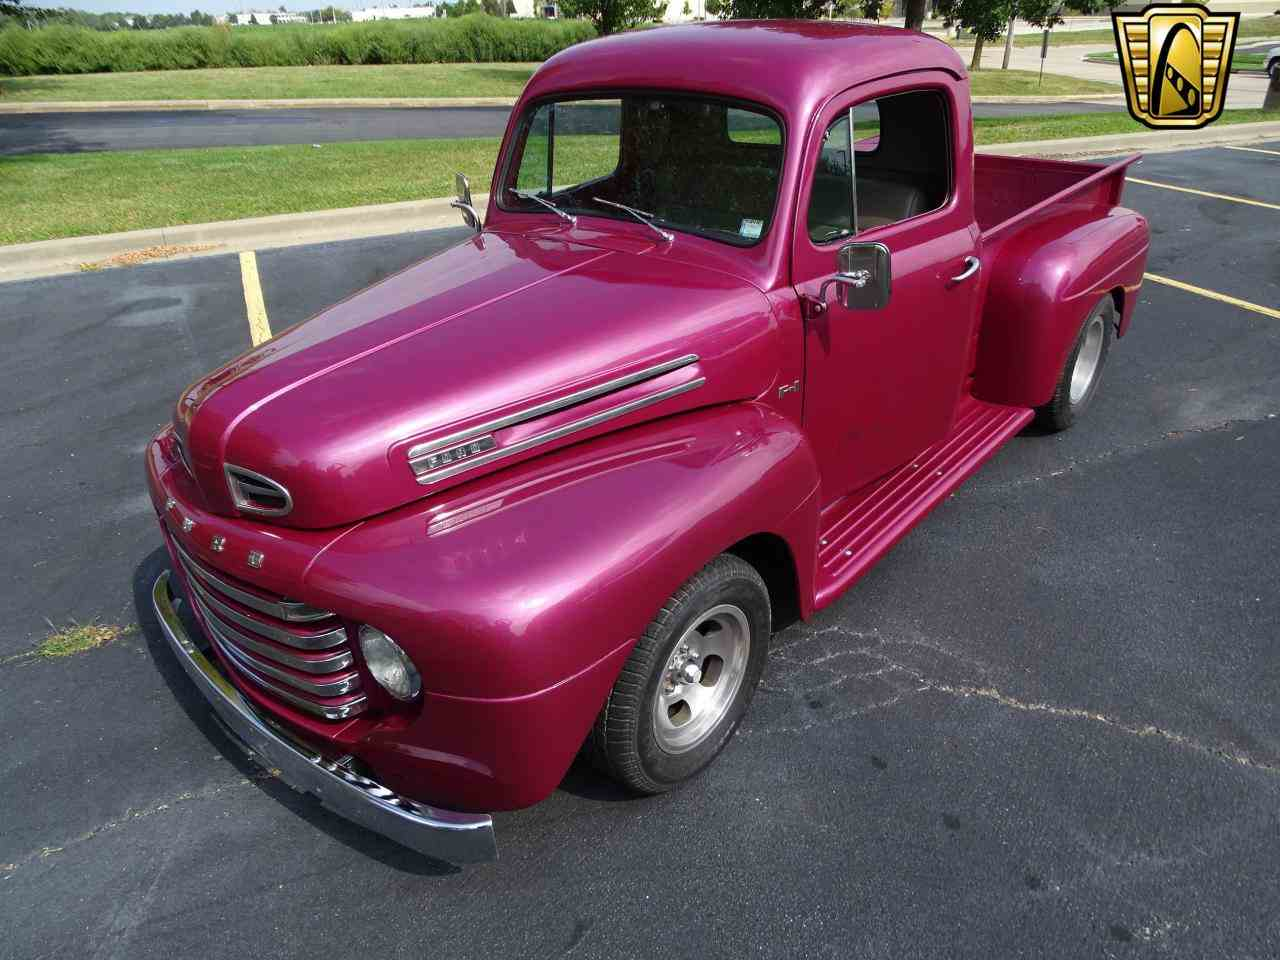 Large Picture of 1950 Ford Pickup located in Illinois Offered by Gateway Classic Cars - St. Louis - LVNS